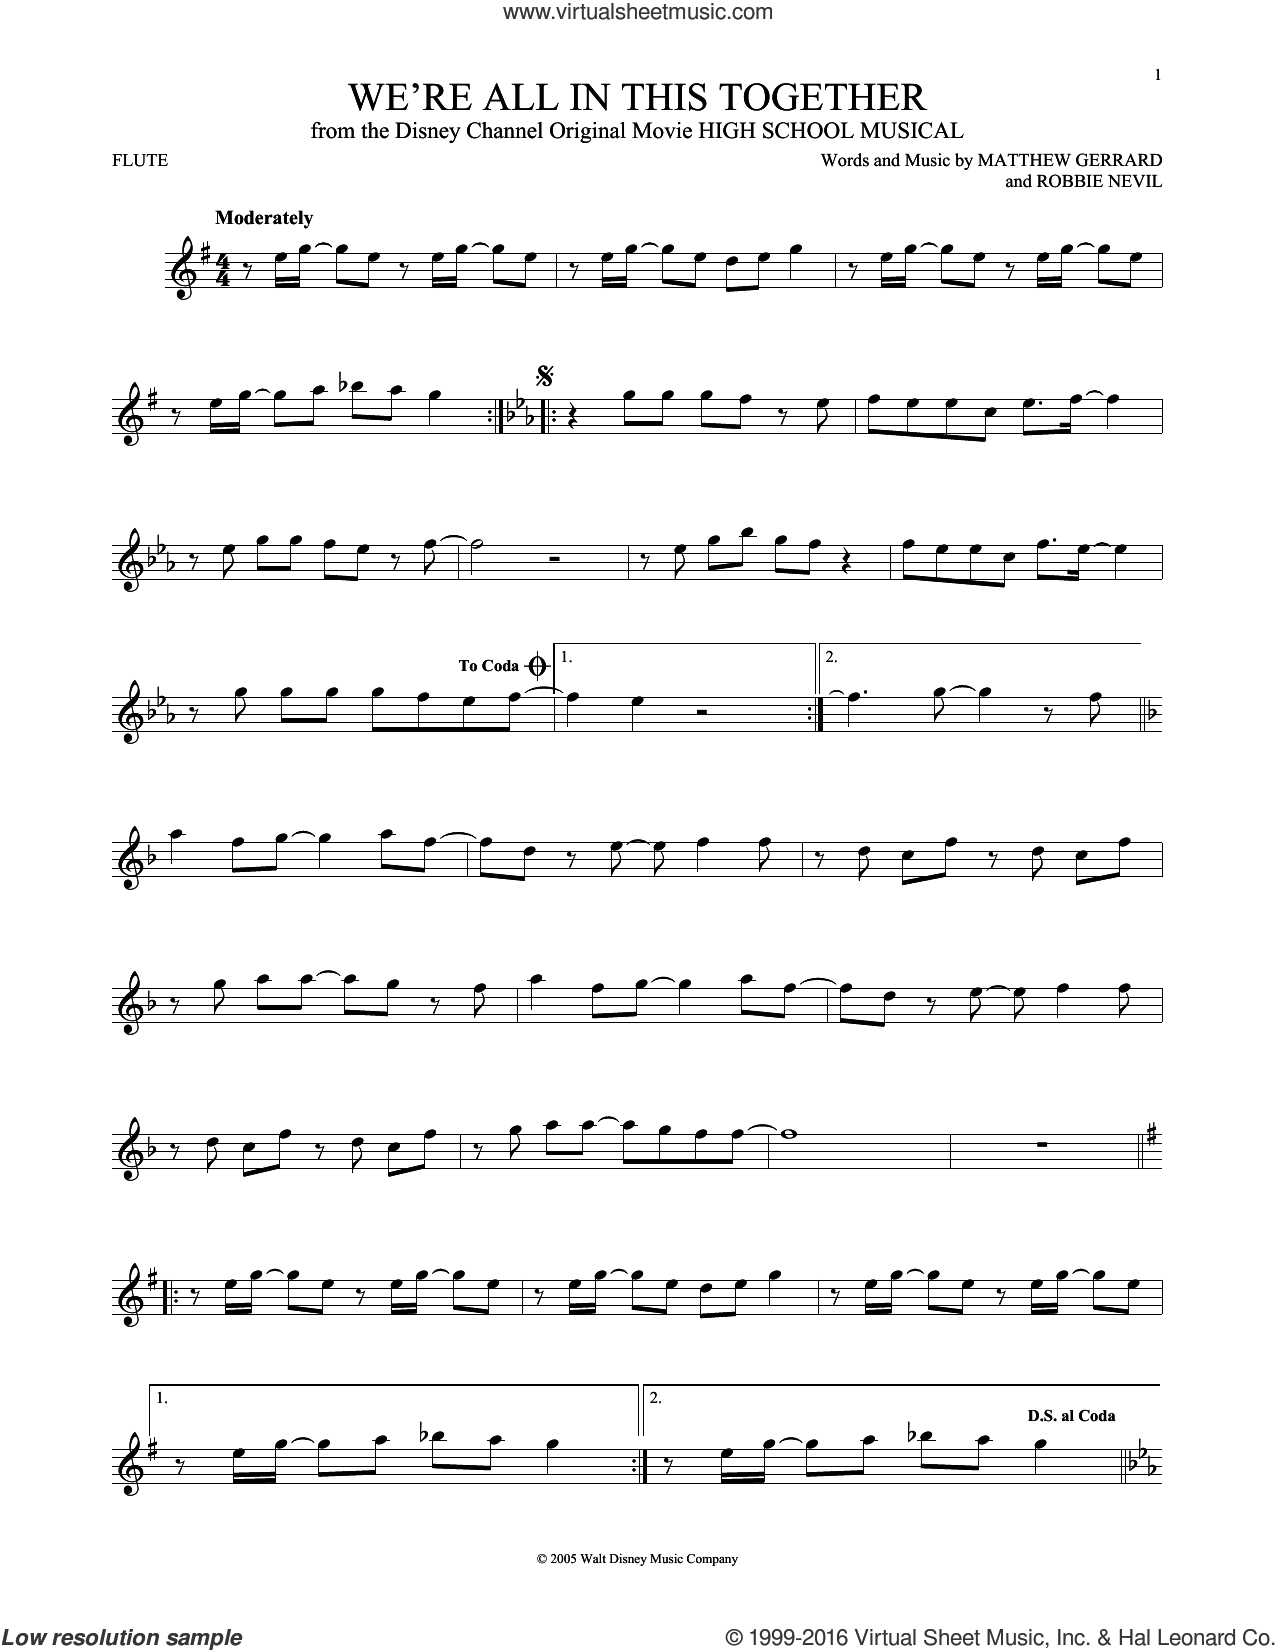 We're All In This Together sheet music for flute solo by Matthew Gerrard and Robbie Nevil, intermediate skill level